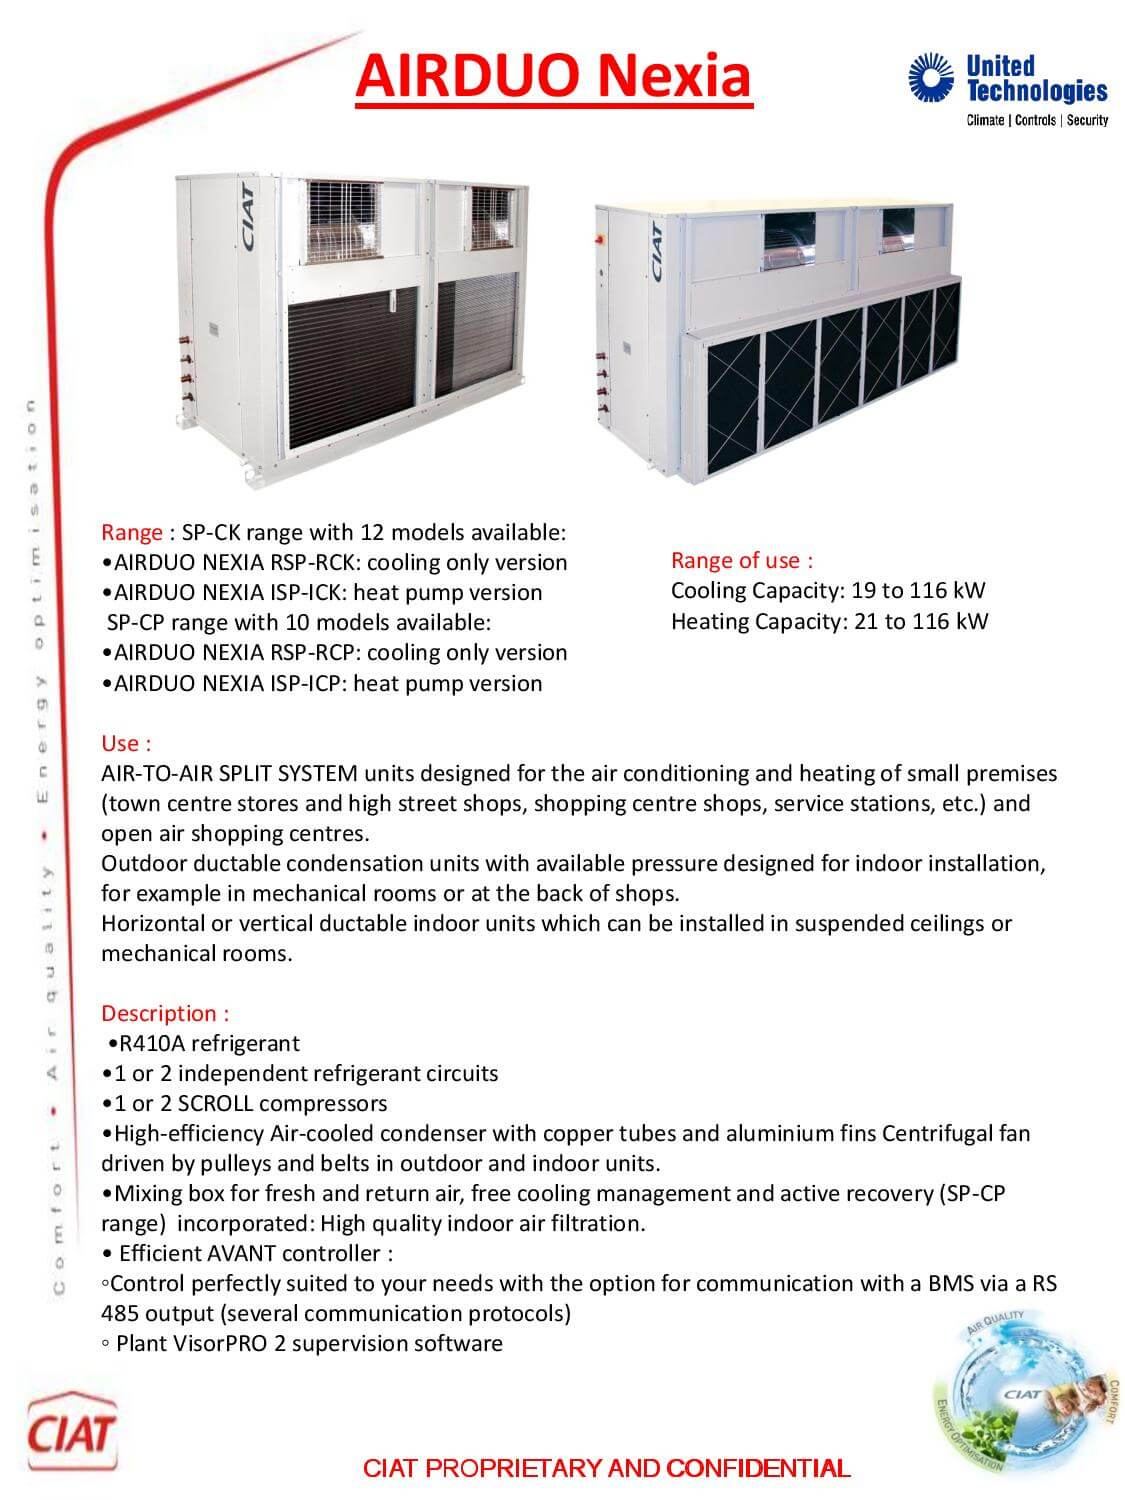 Airduo Nexia Ciat Air Conditioning And Heating